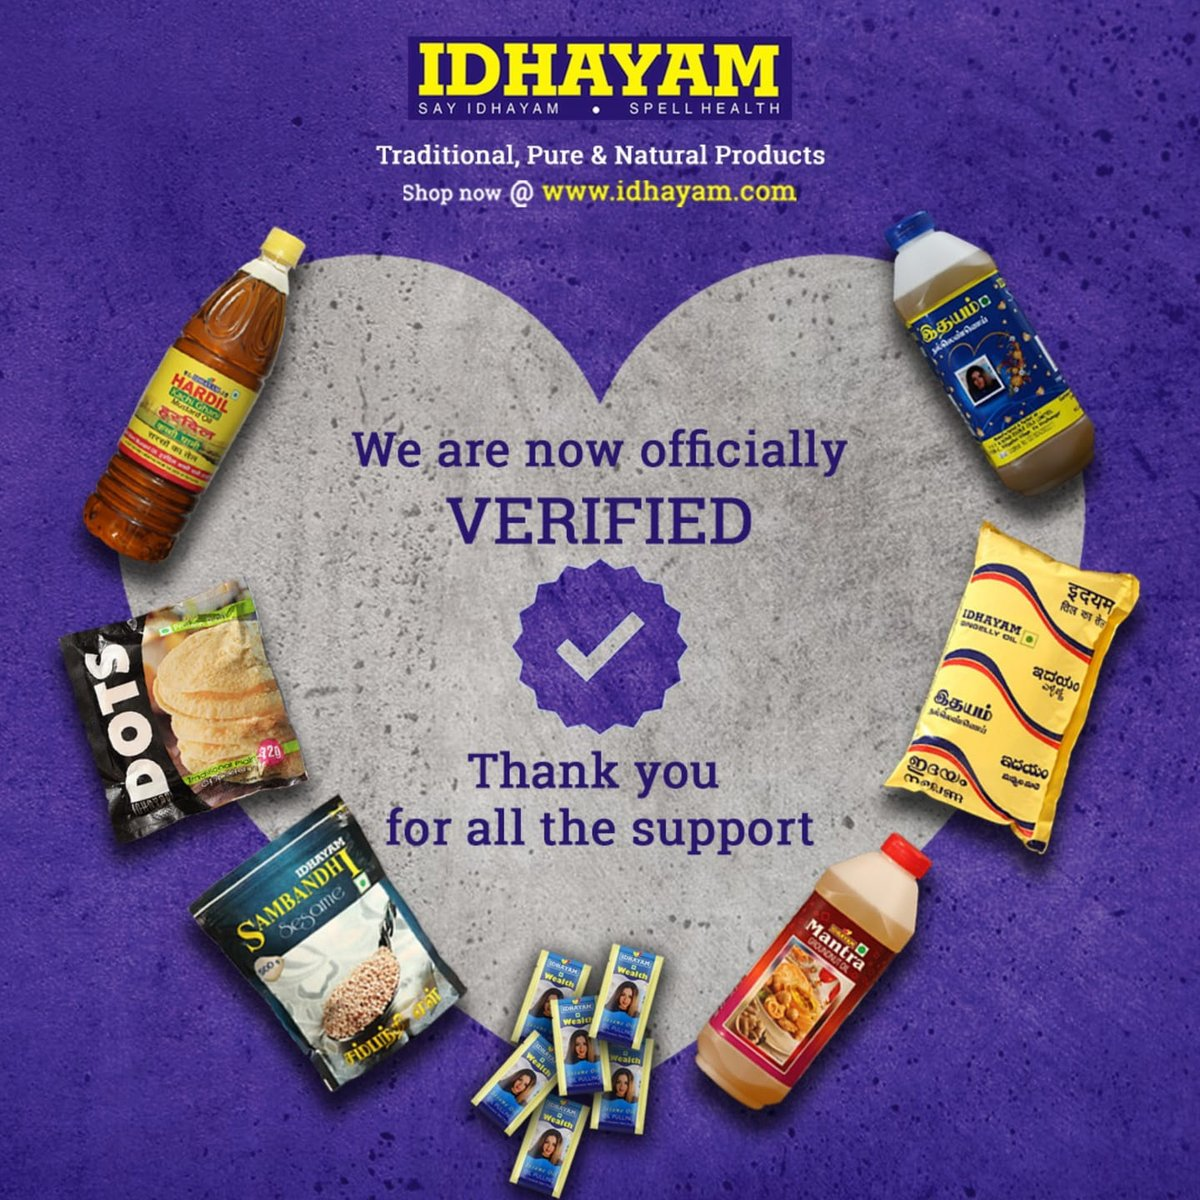 We are officially verified Facebook page with a Blue tick. Please follow us for any updates on Idhayam products and related news -   #verified #idhayammantra #Update #Facebook #thursdayvibes